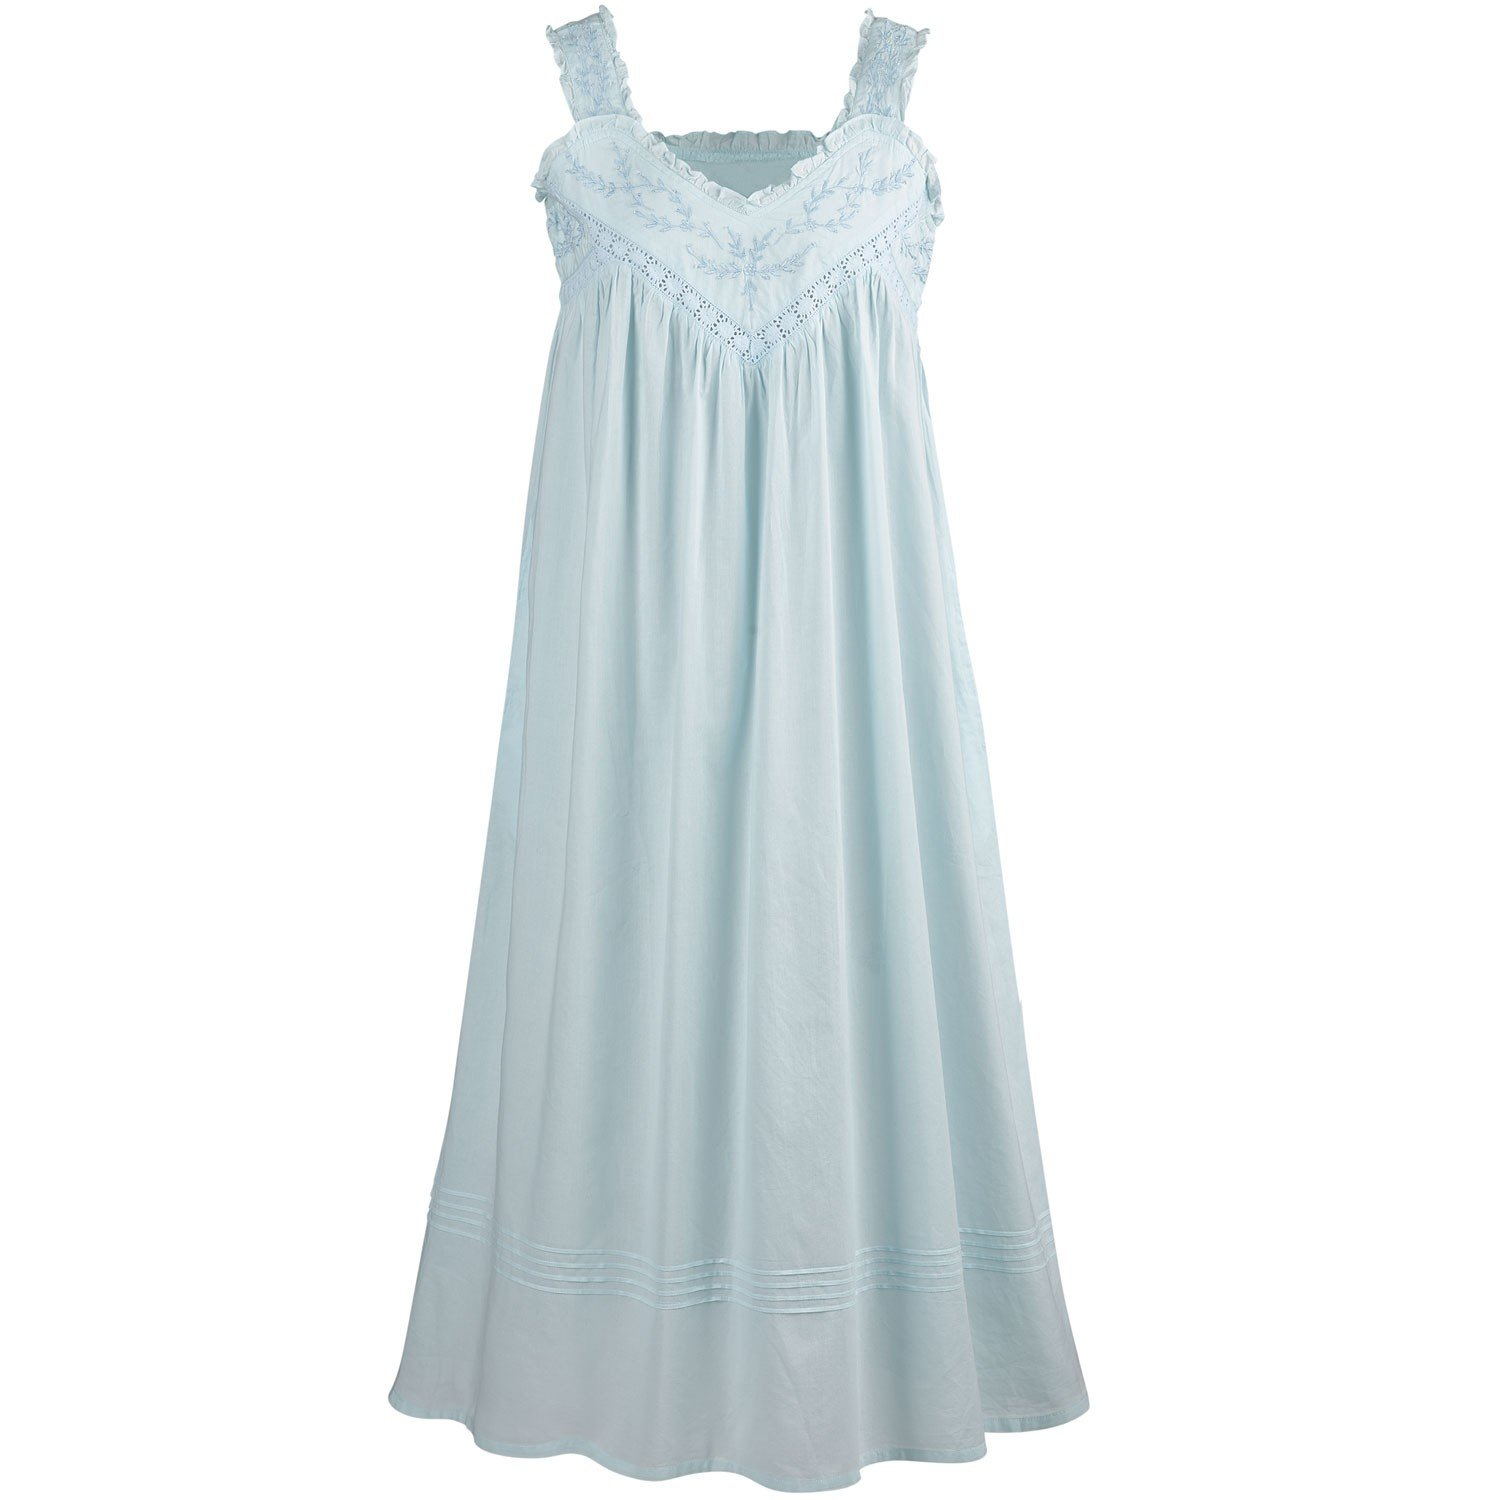 La Cera Cotton Chemise - Lace V-Neck Nightgown with Pockets Nightgown - Blue - Large by La Cera